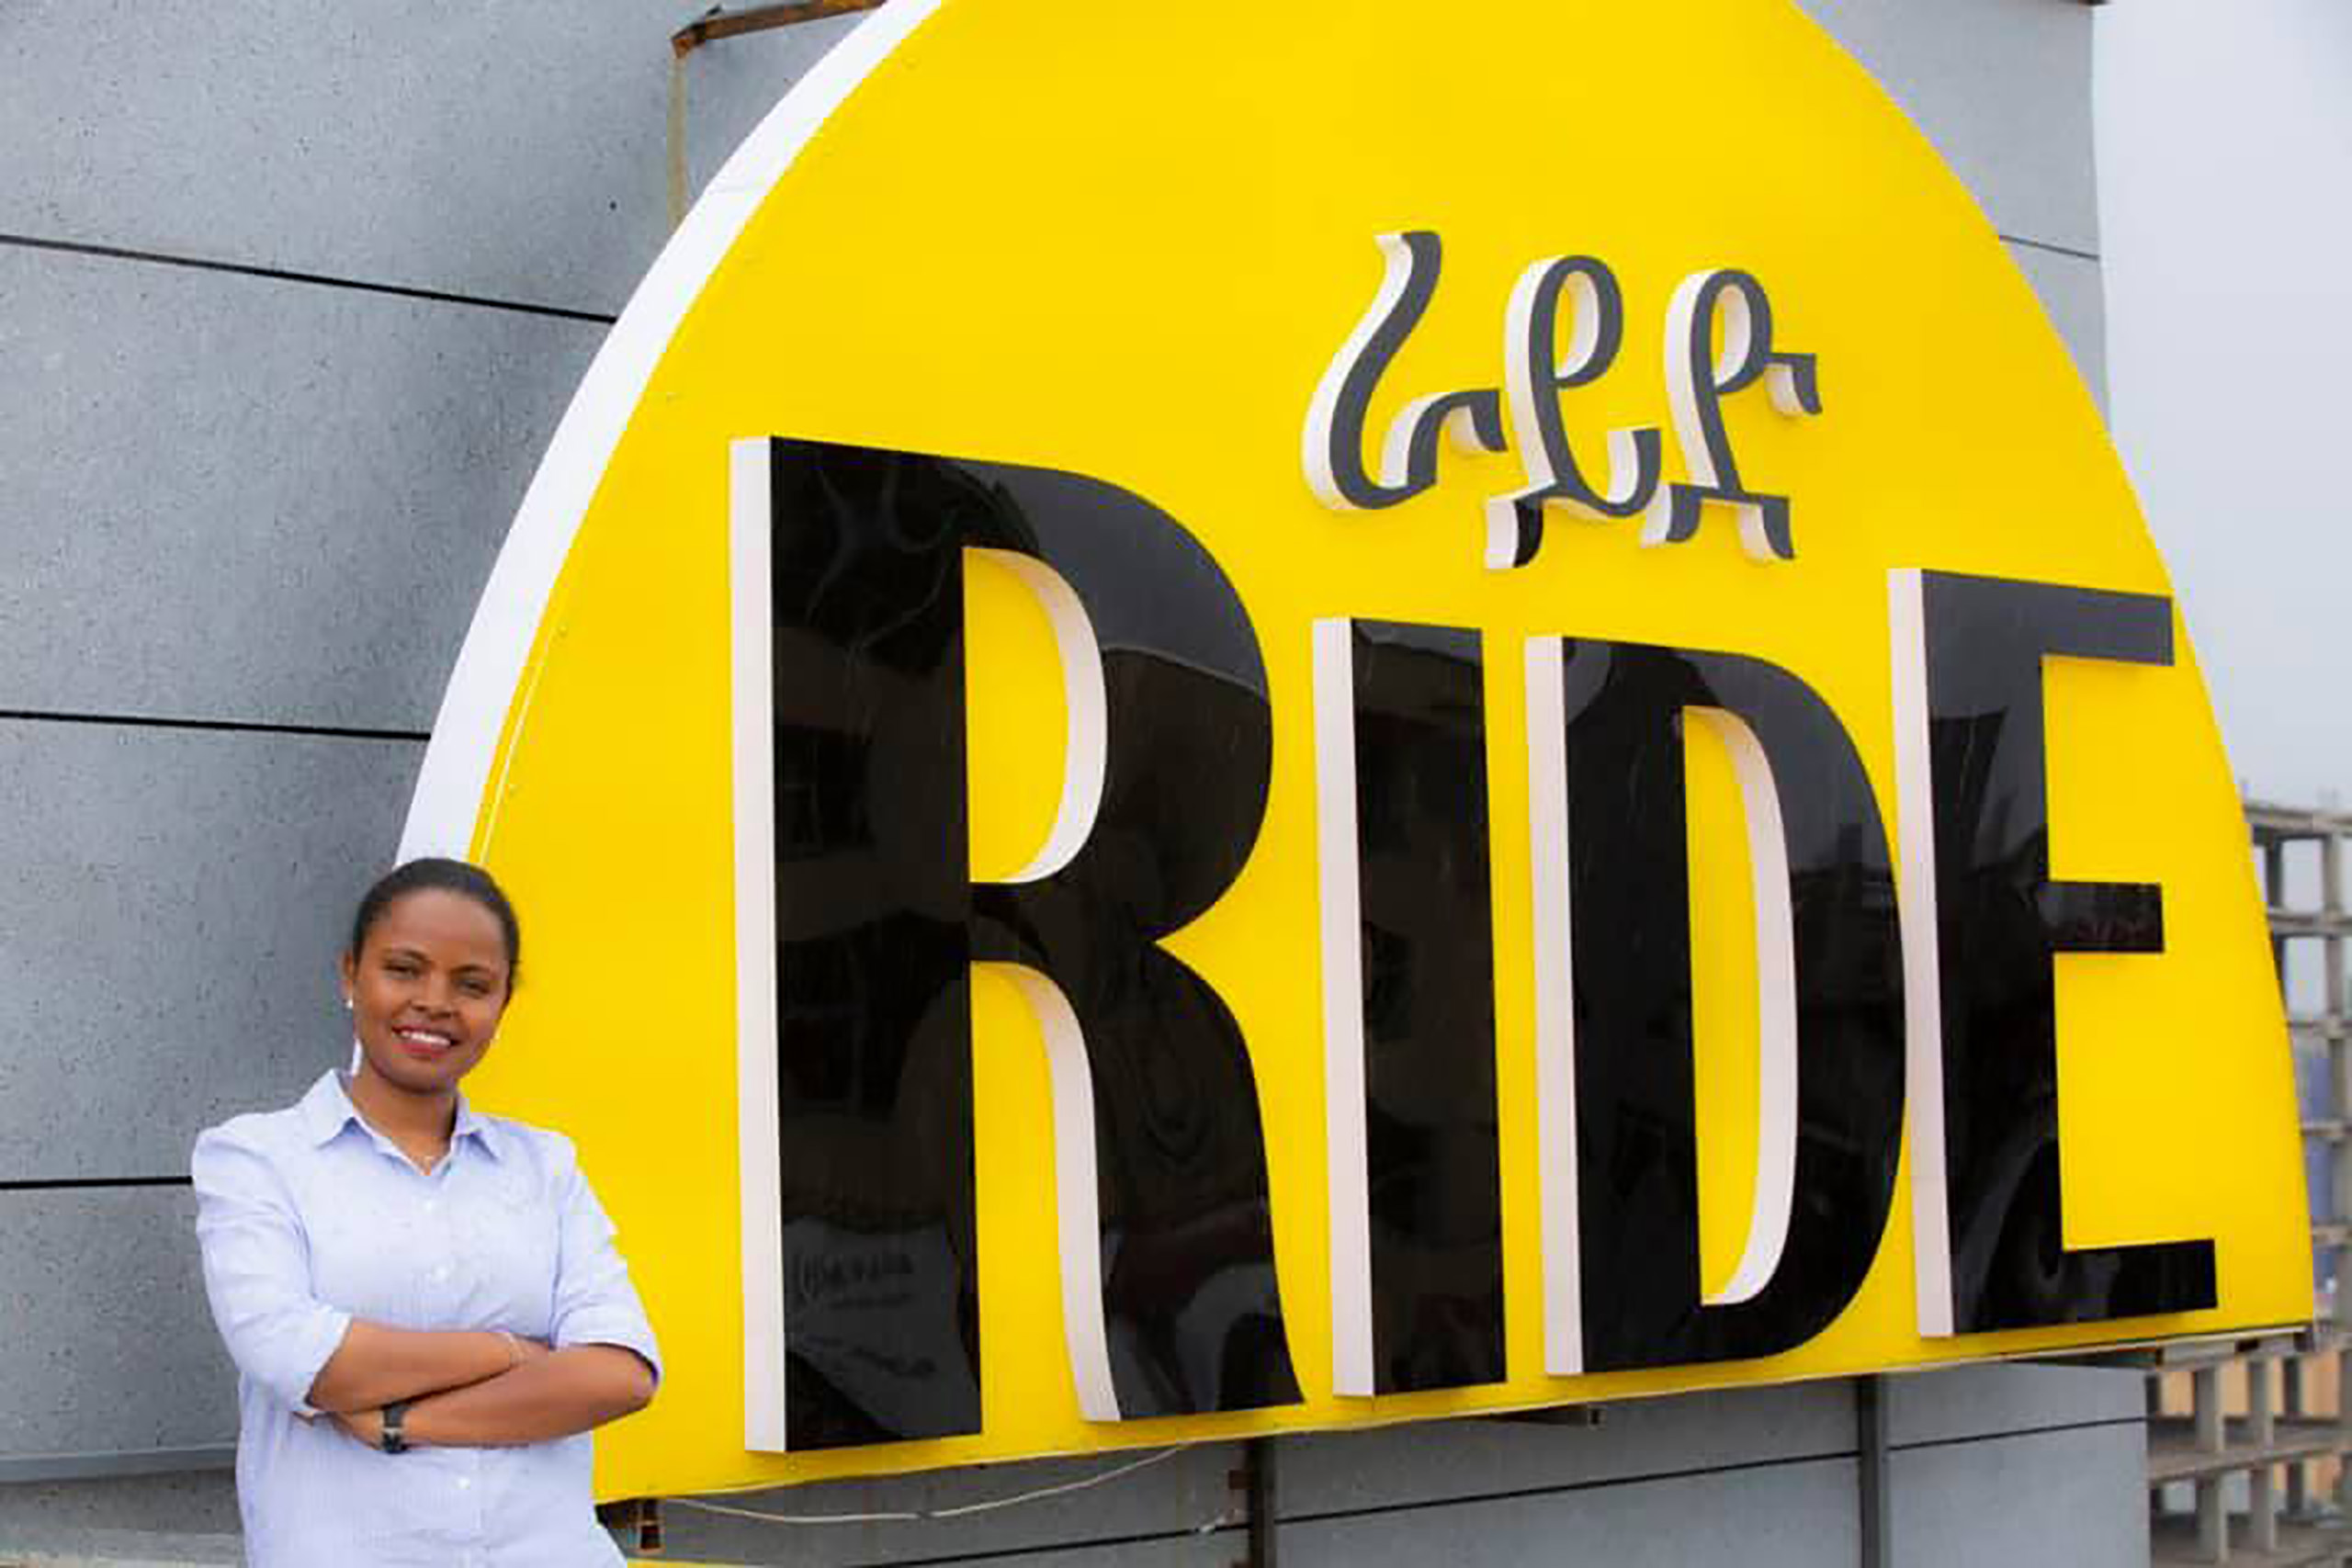 Samrawit Fikru, creator of RIDE app, smiling next to a large yellow and black semi-circle RIDE sign in Addis Ababa, Ethiopia